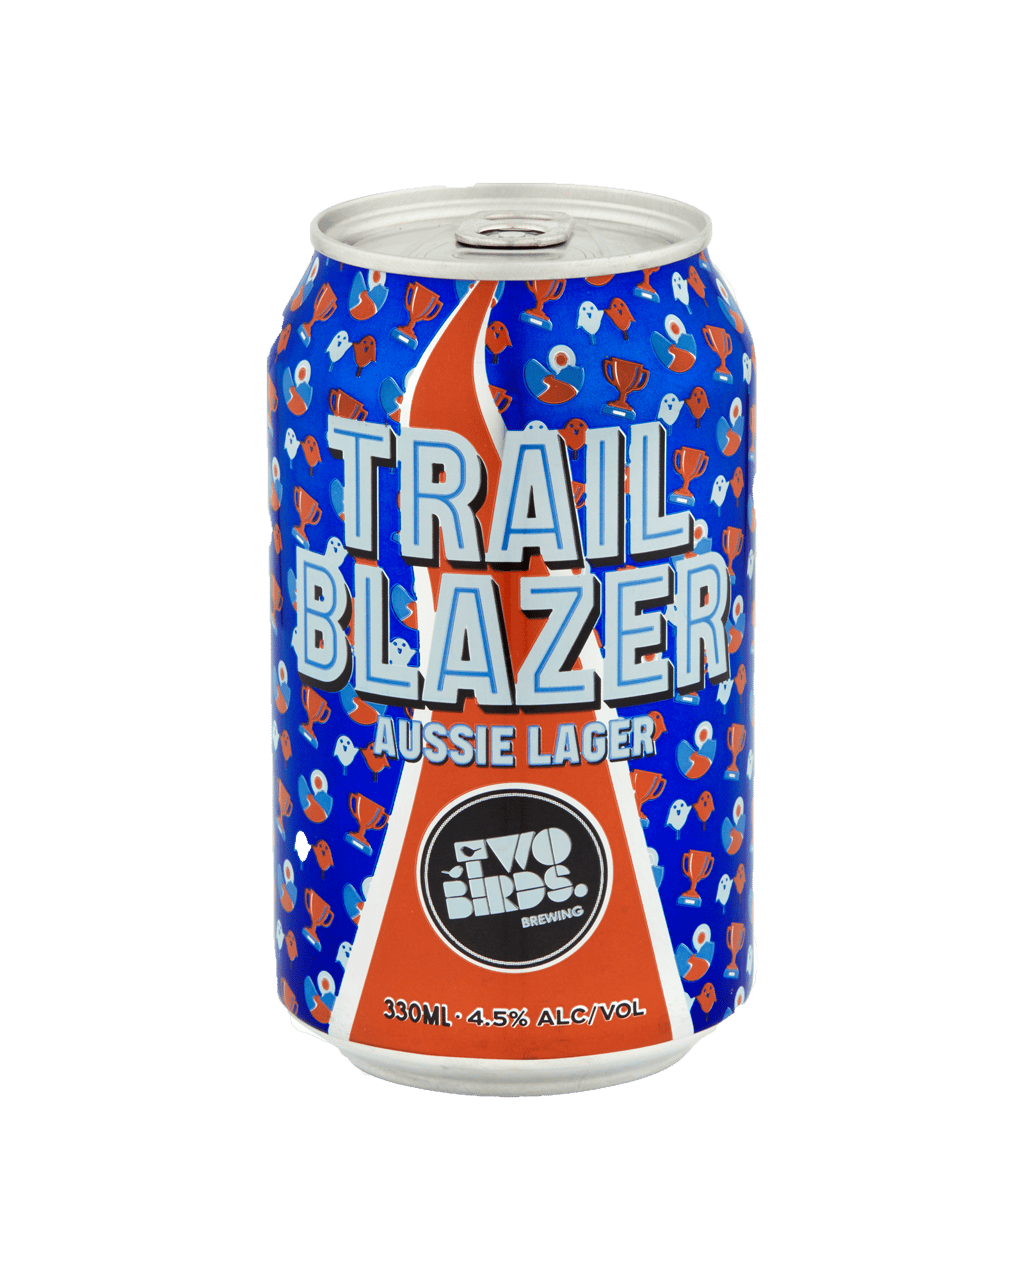 d57cc97a07f Two Birds Trail Blazer Cans 330mL